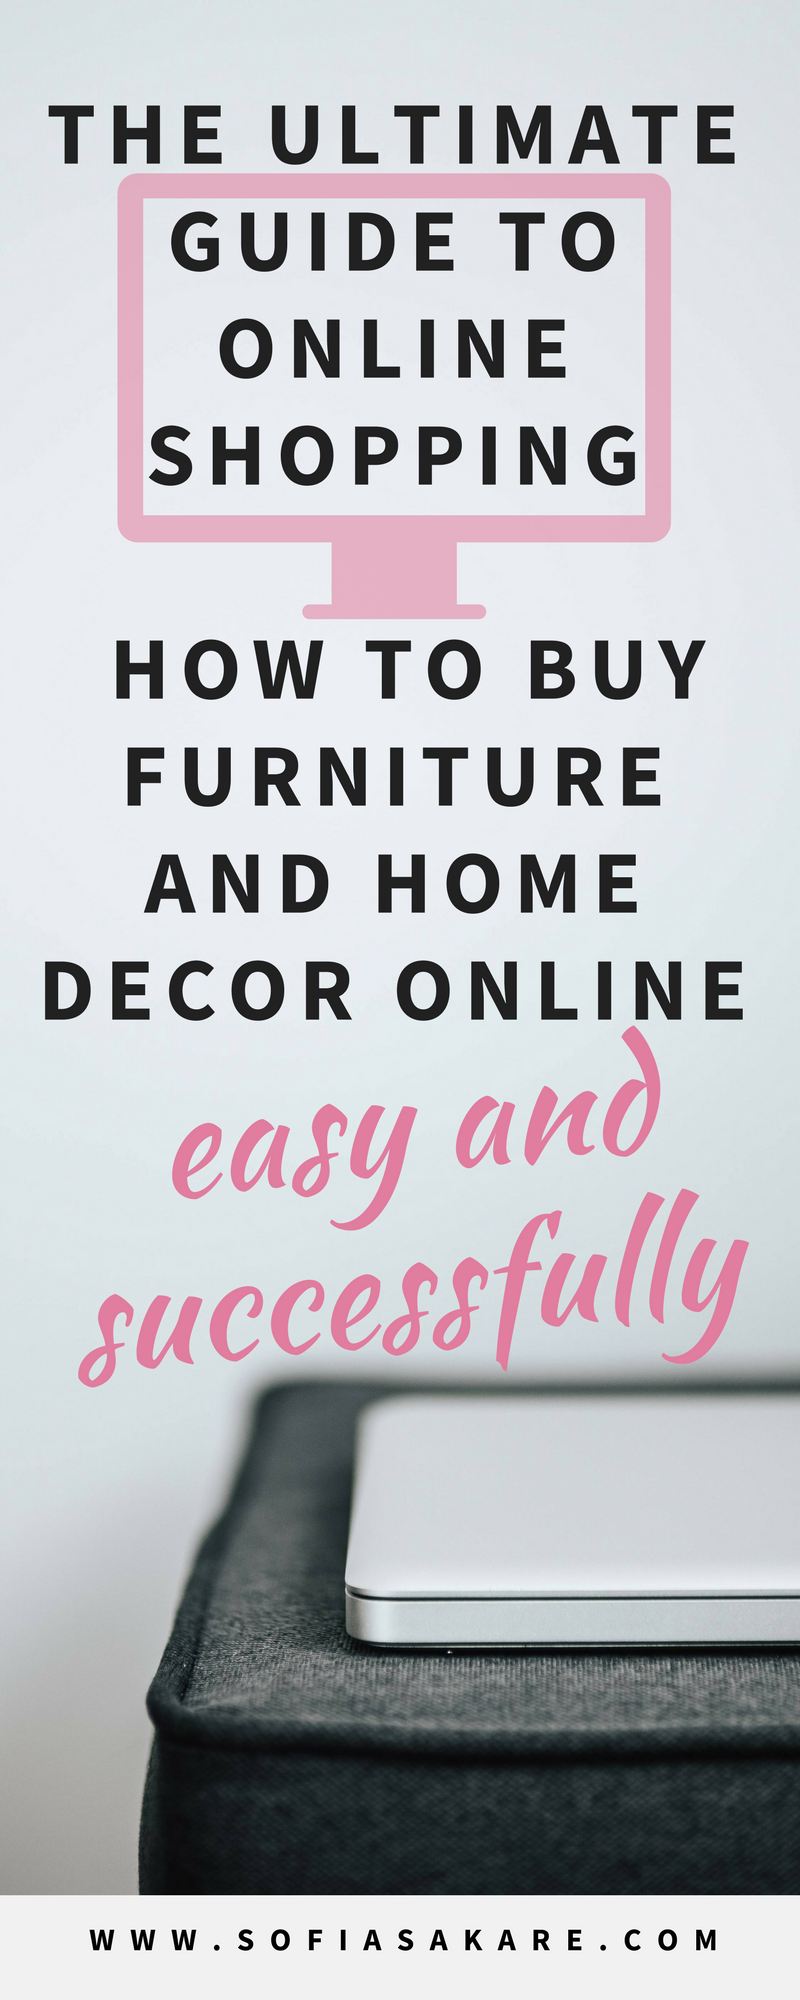 The Ultimate Guide to Online Shopping How to Buy Furniture and Home Decor Online